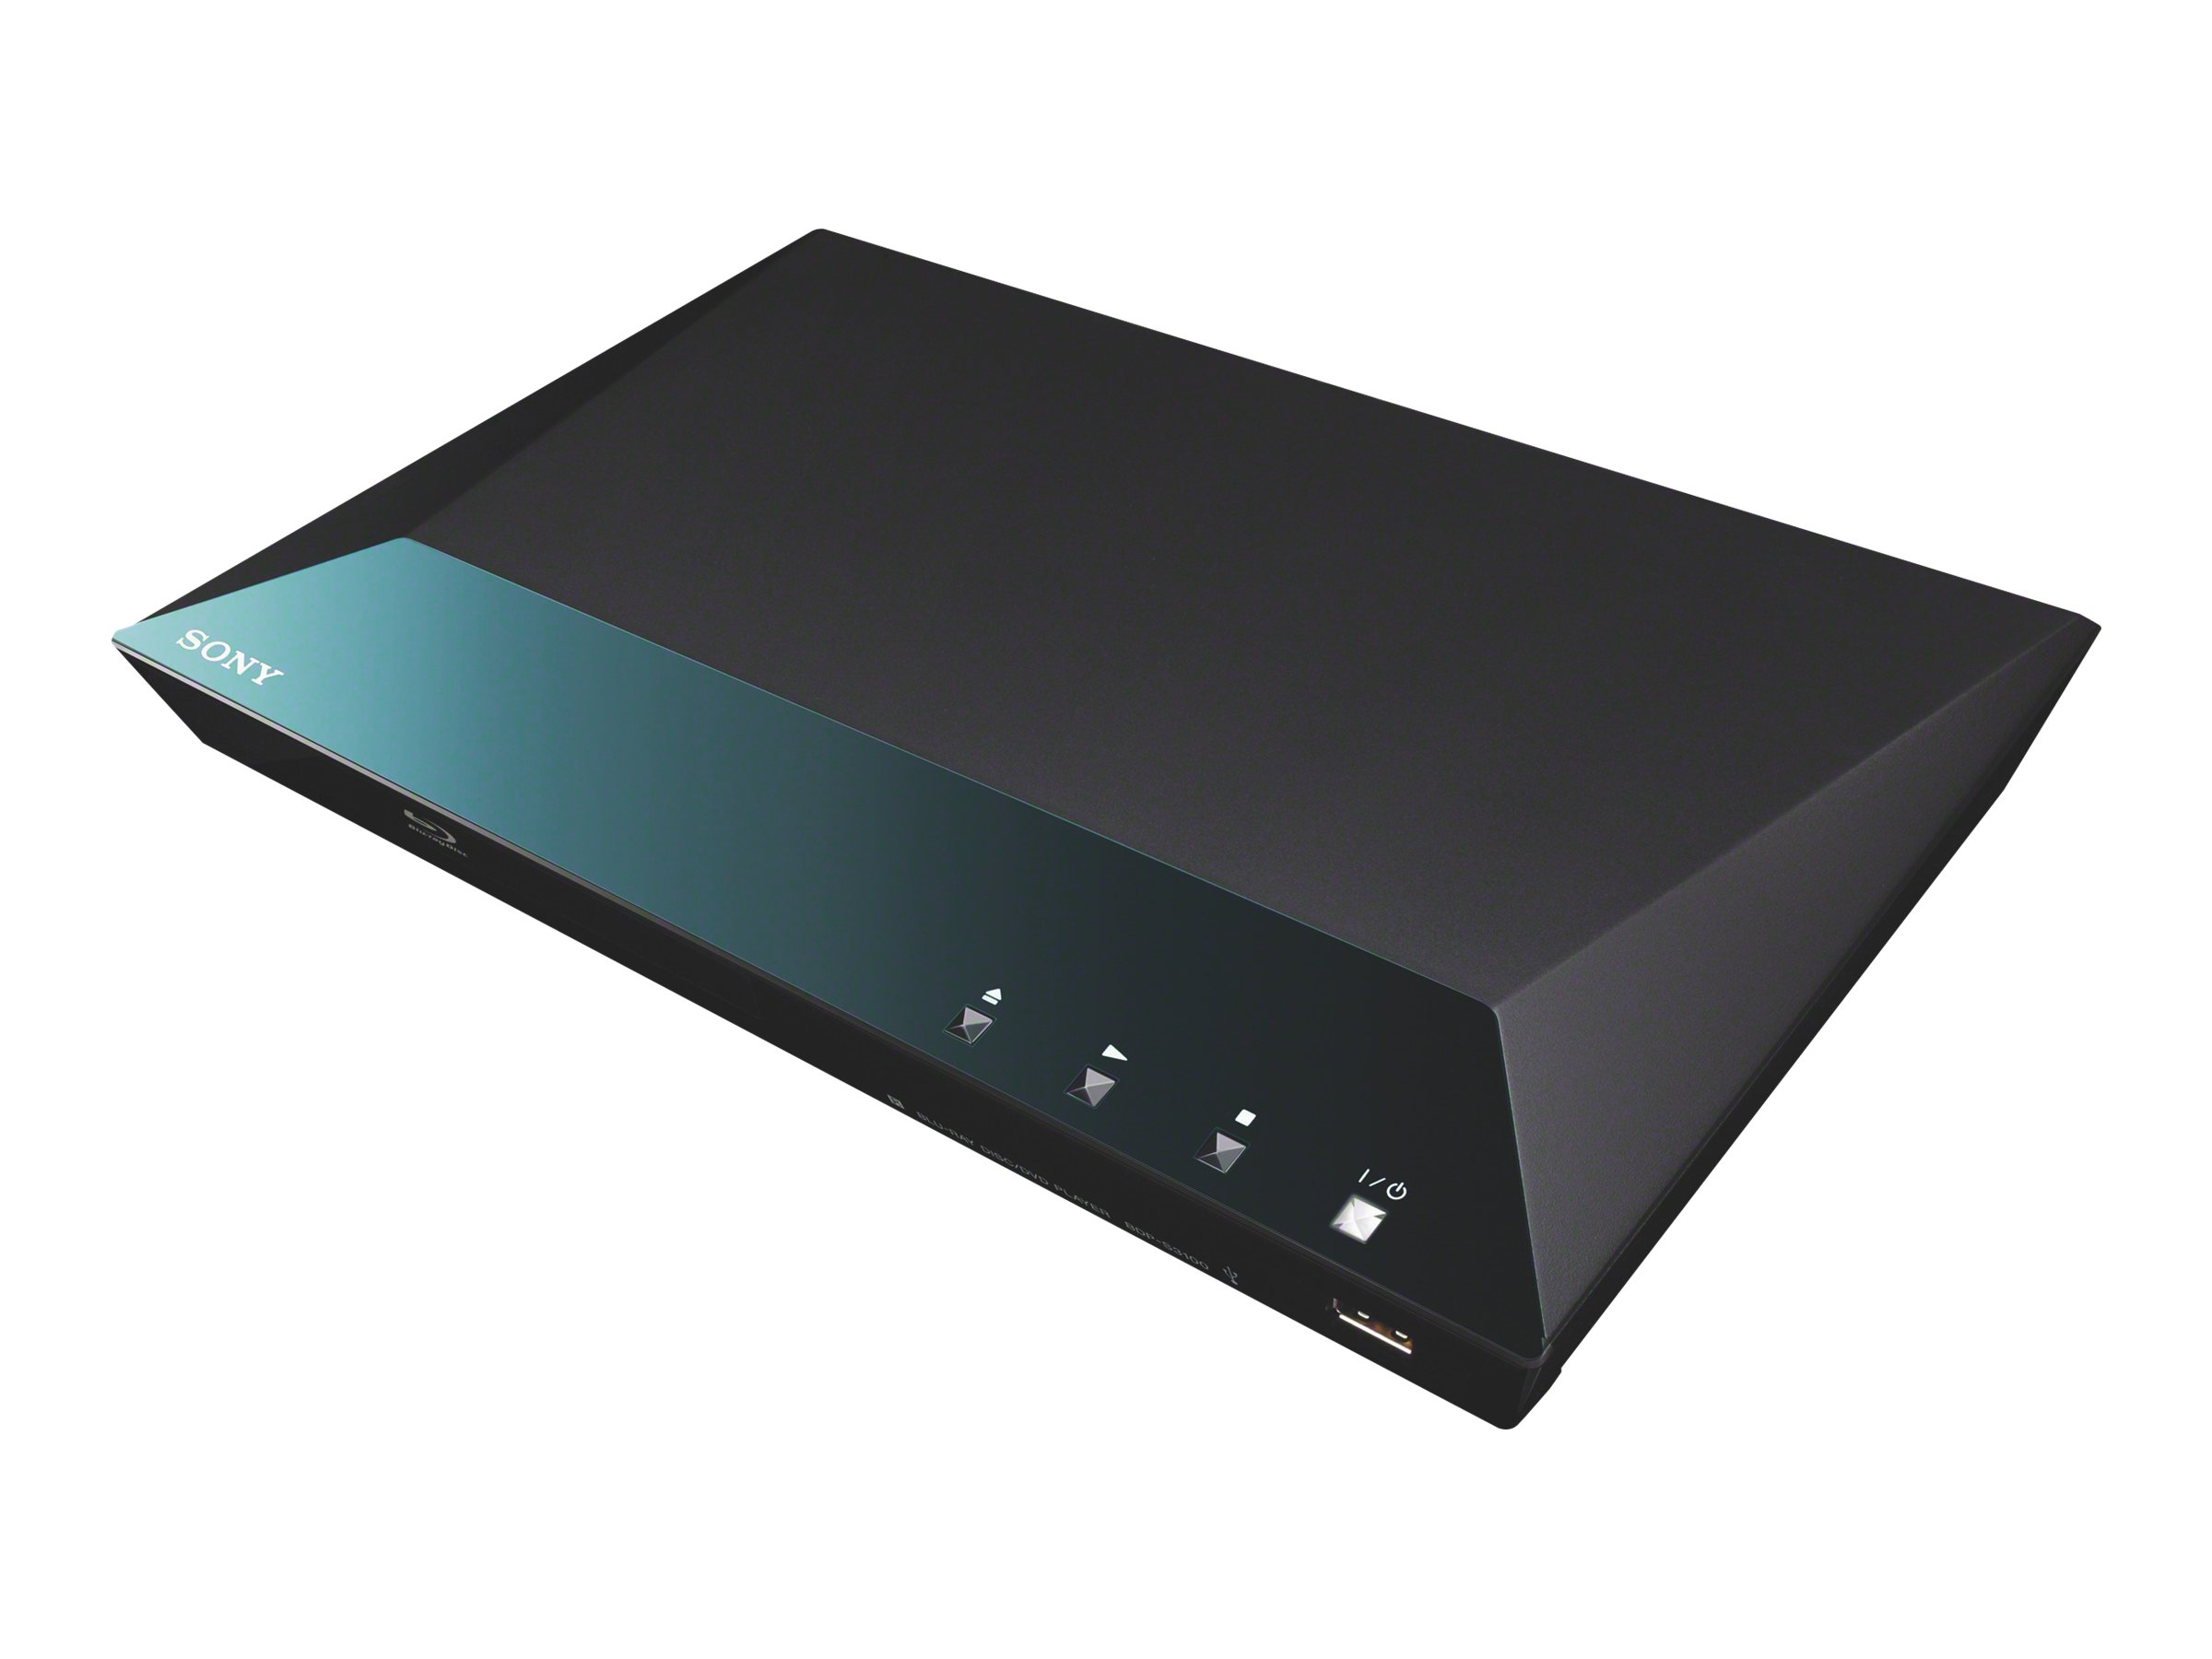 Sony Blu-ray Disc™ Player w/ Super Wi-Fi® - BDP-S3100